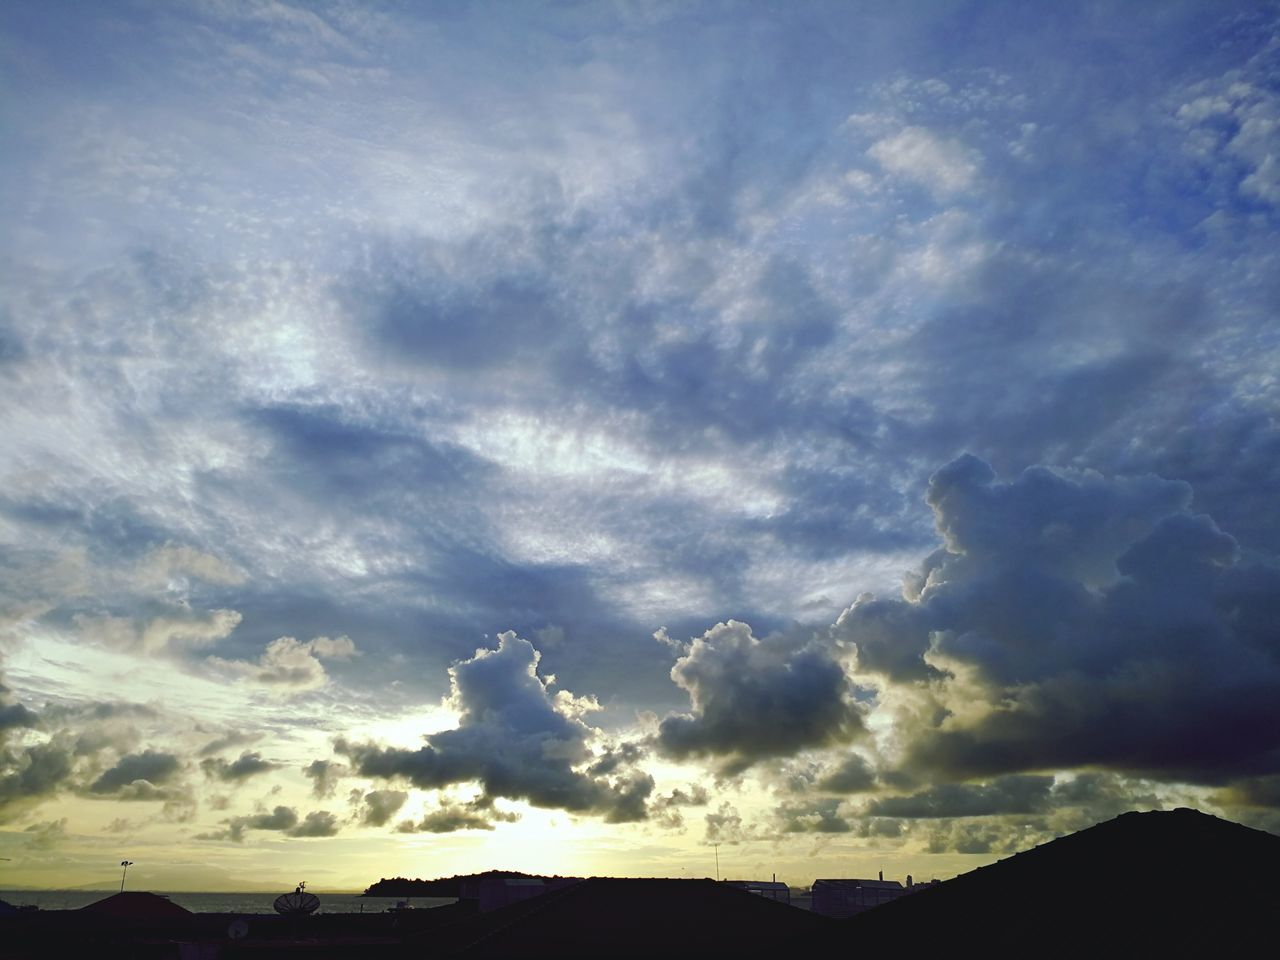 sky, cloud - sky, scenics, beauty in nature, nature, tranquility, tranquil scene, no people, outdoors, silhouette, sunset, day